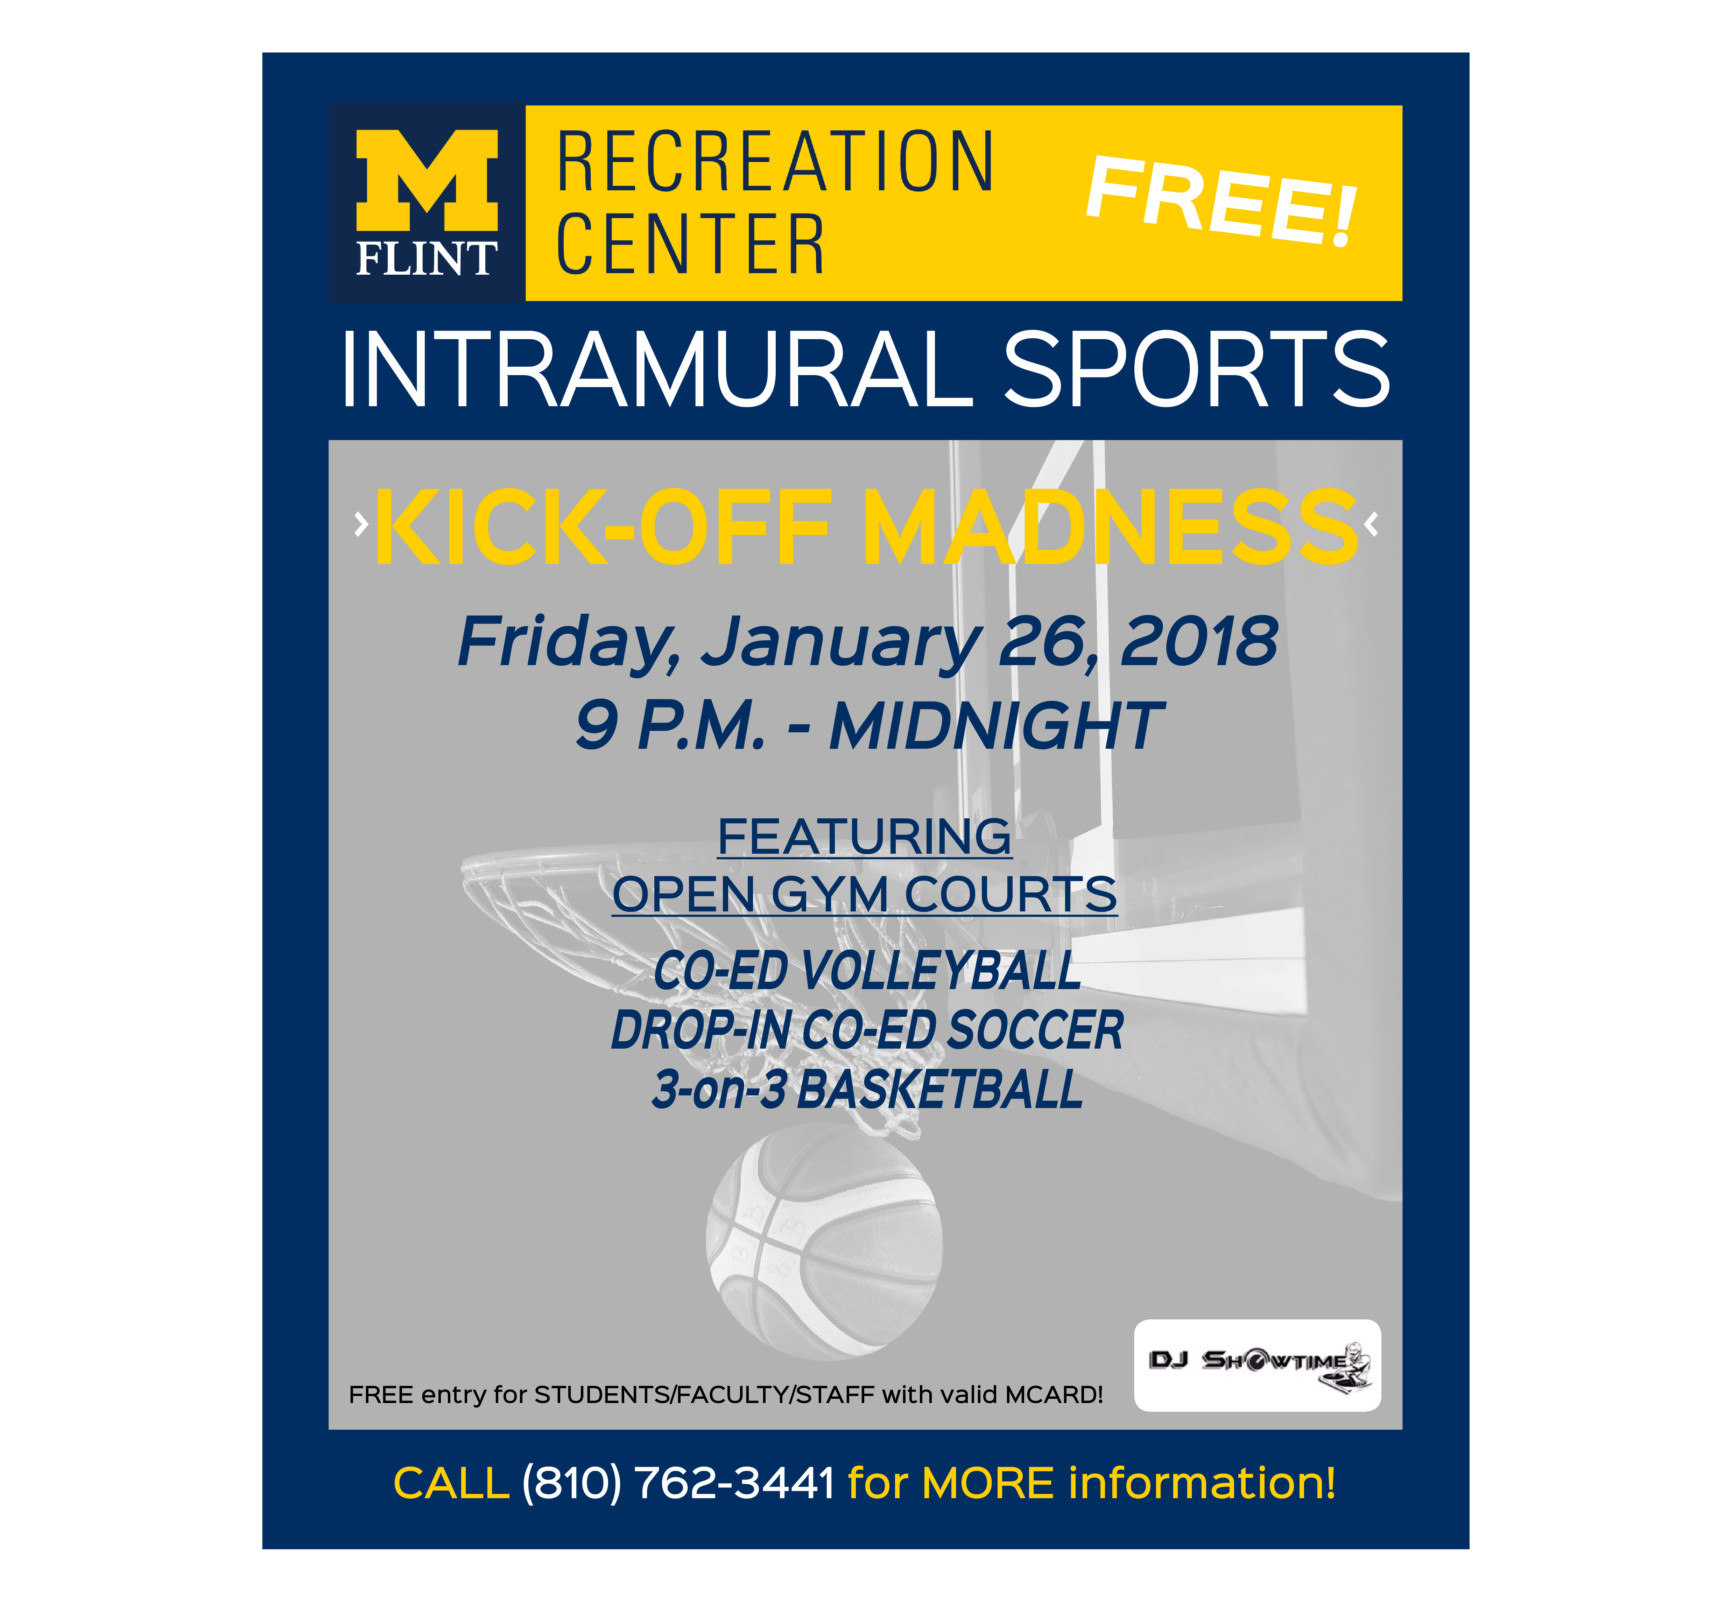 Kick off party for intramural sports - soccer, volleyball, basketball